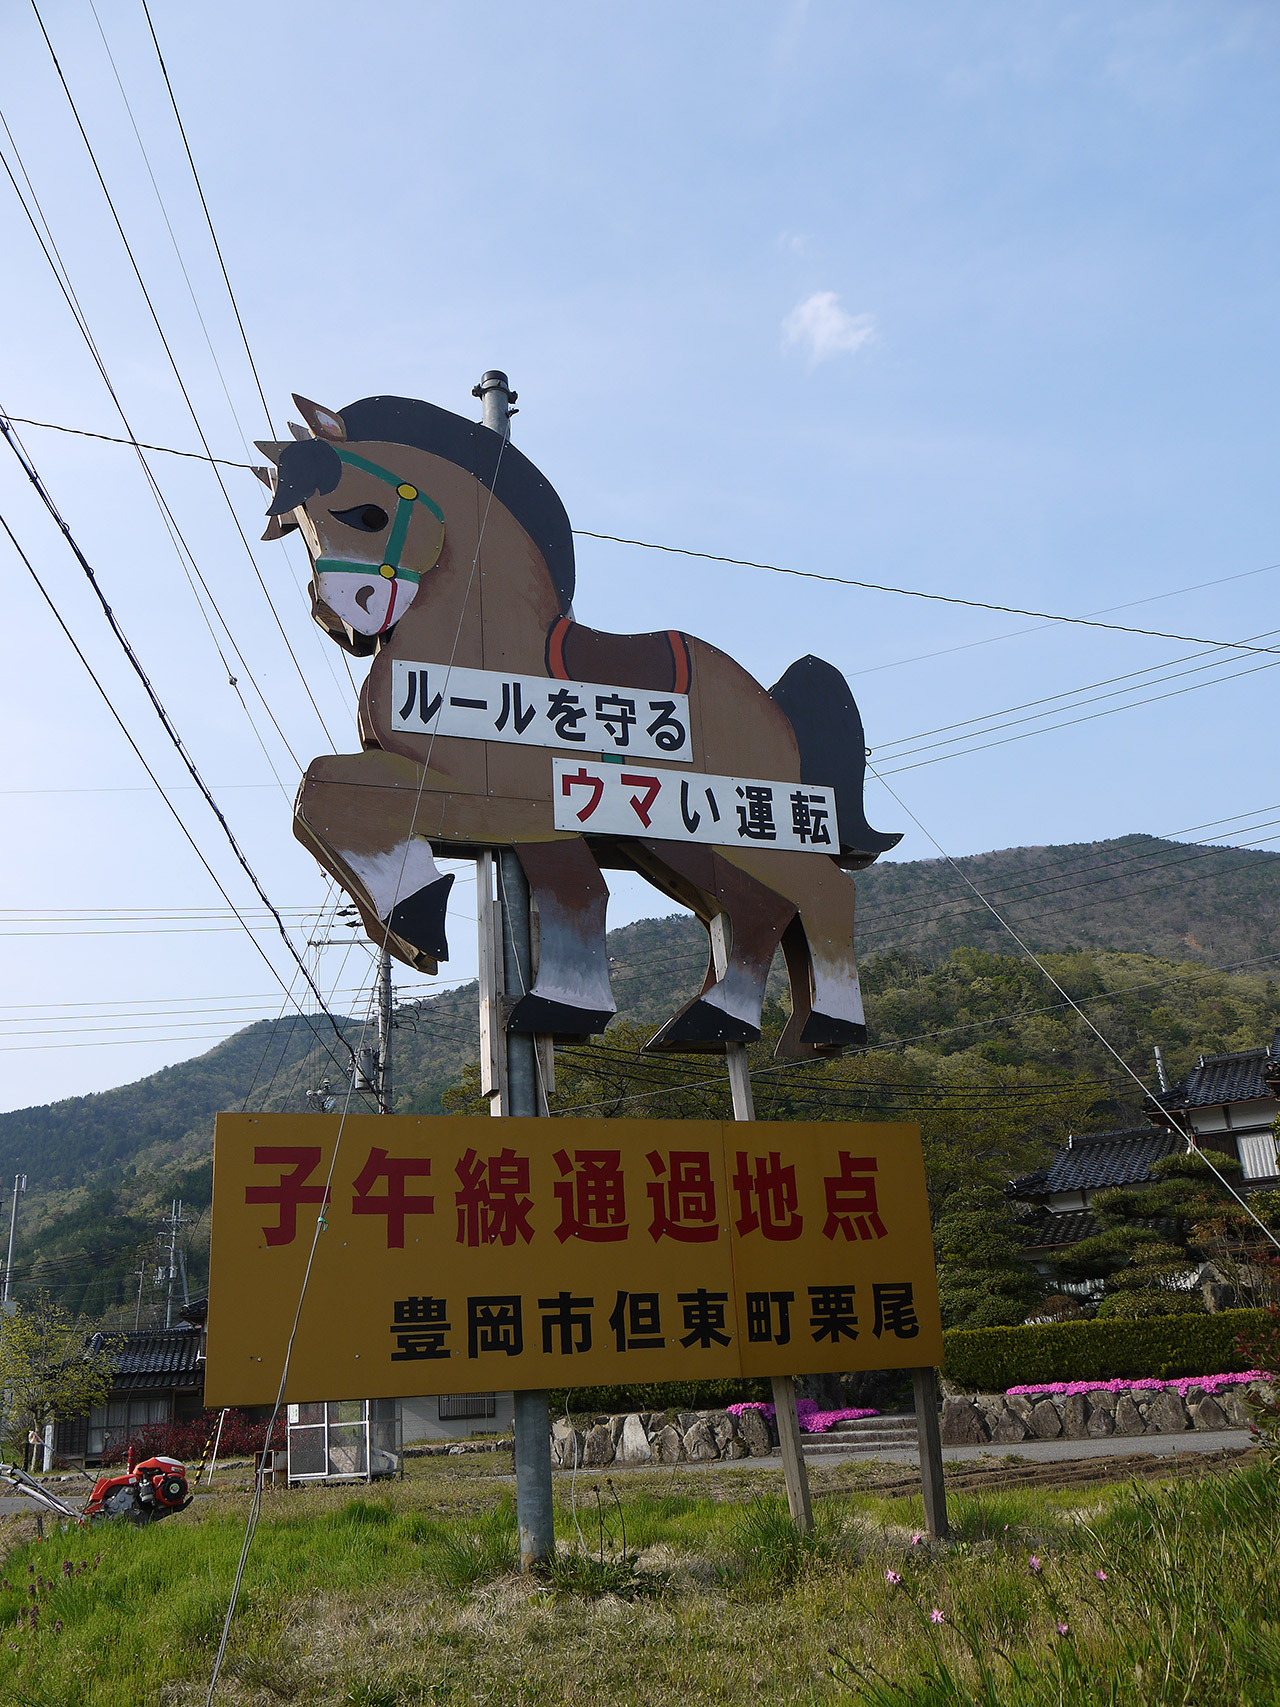 A sign showing the location of the Japan Time Meridian